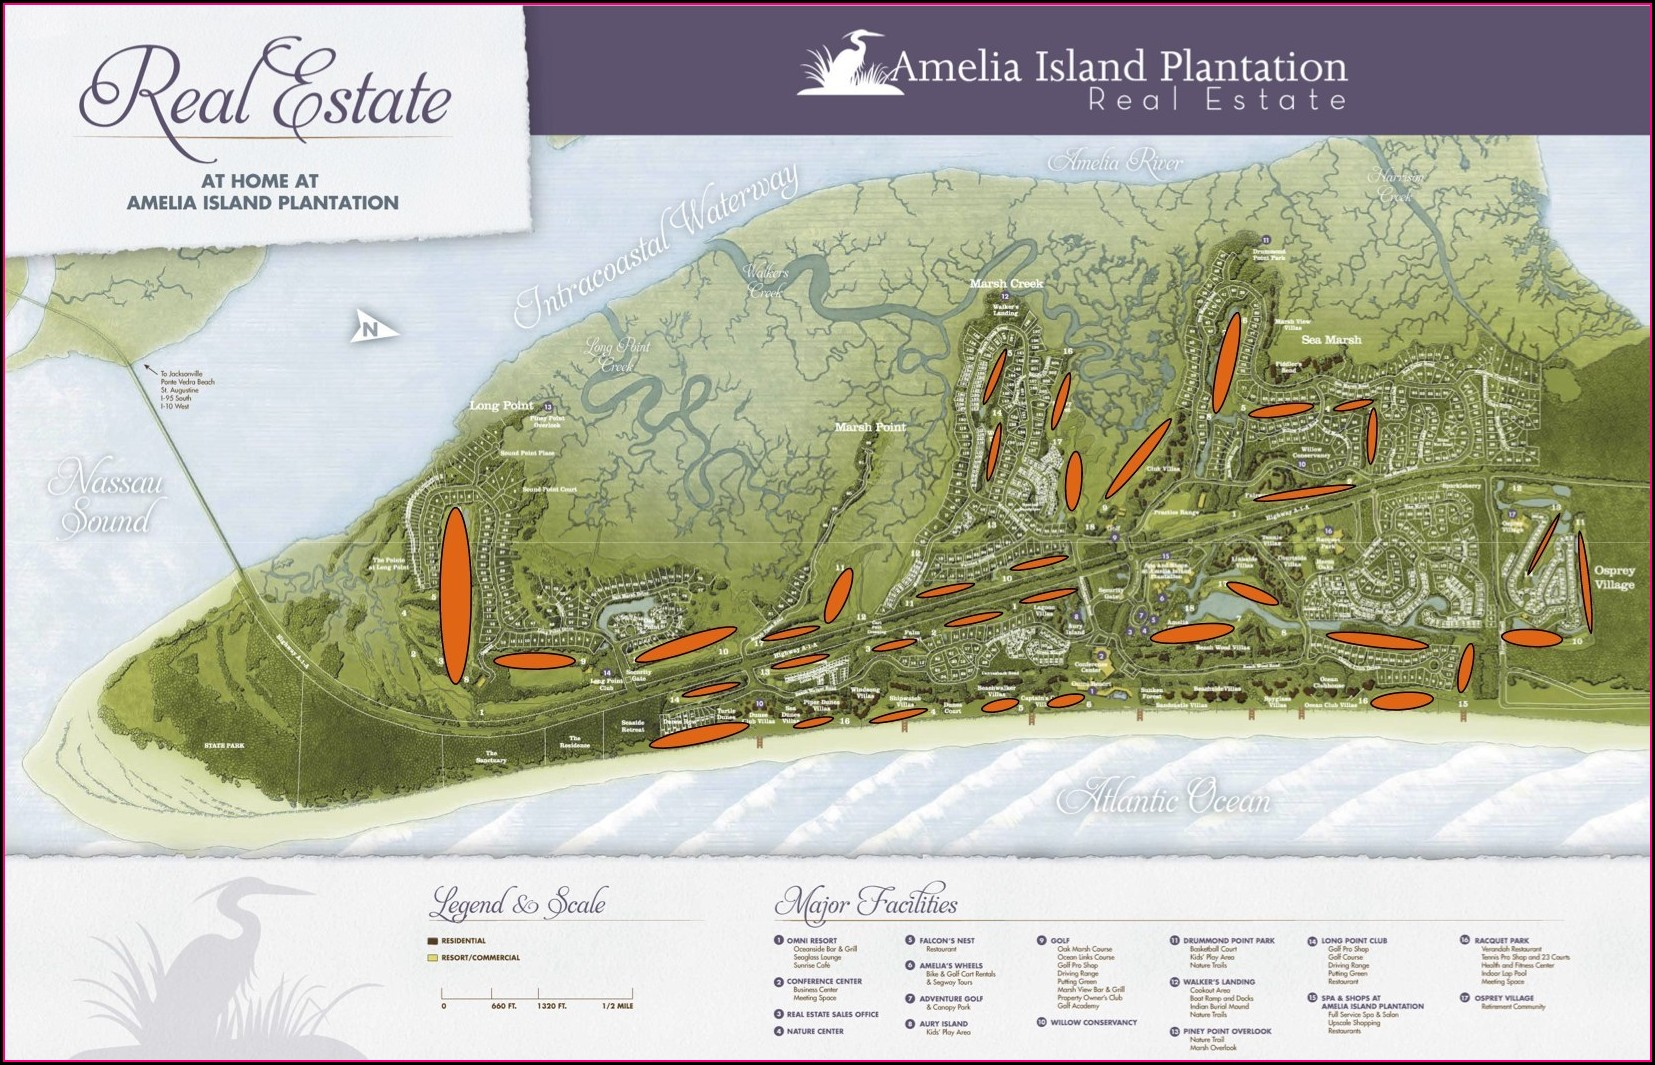 Villas Of Amelia Island Plantation Map